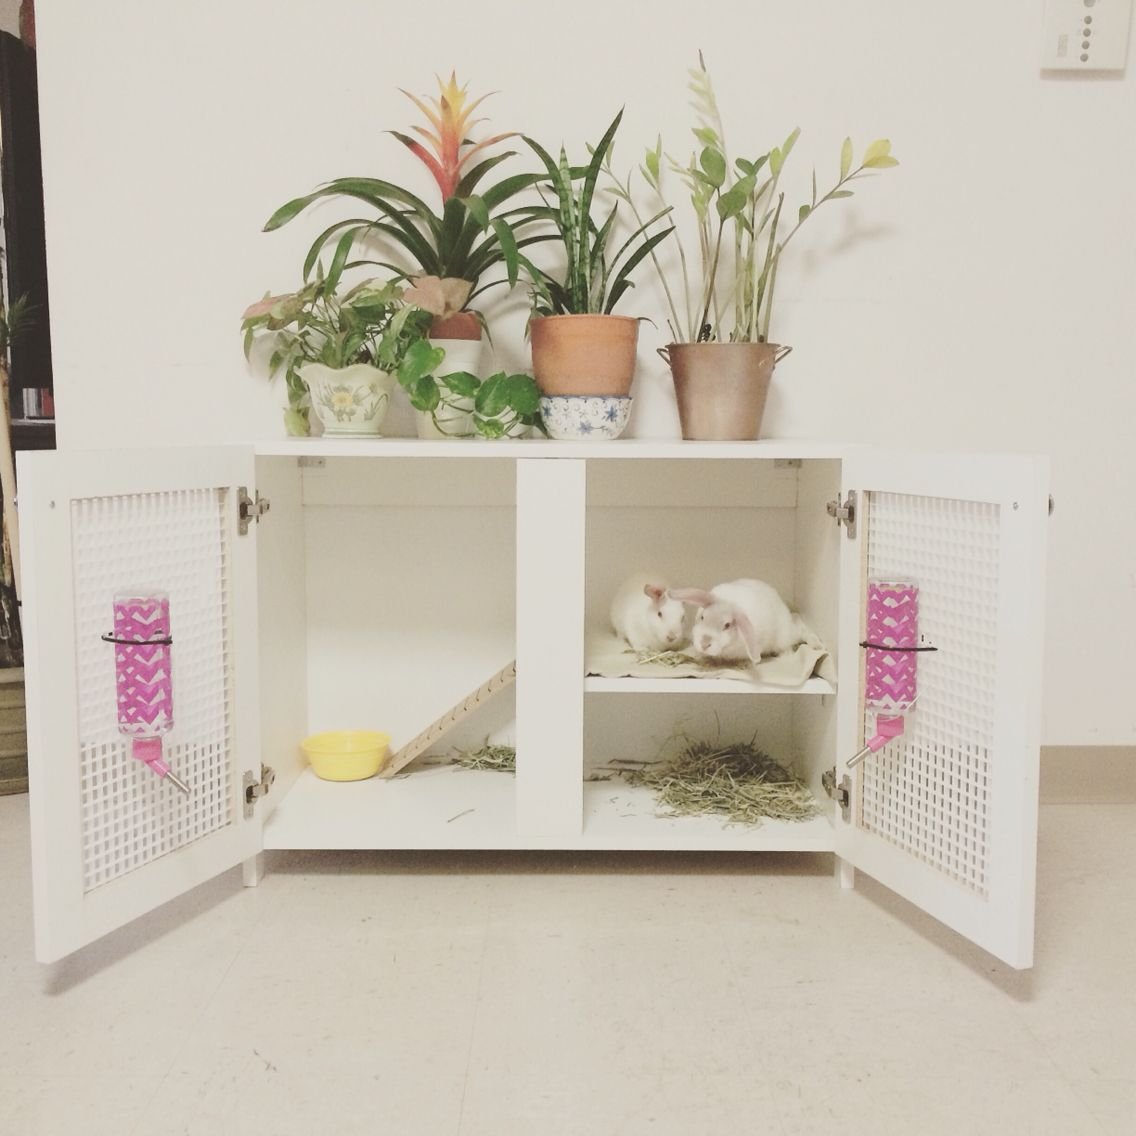 1000 ideas about indoor rabbit on pinterest rabbit for Rabbit house images